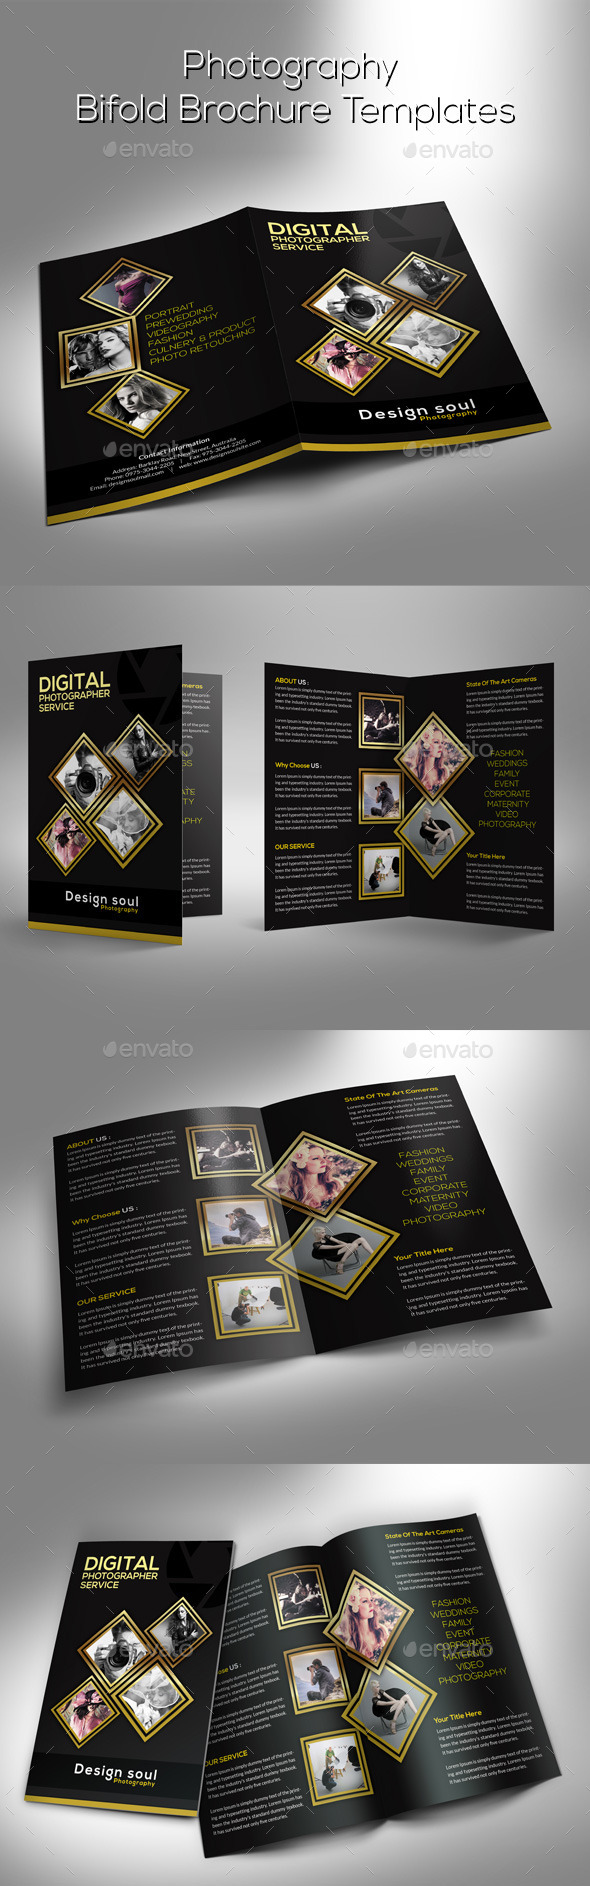 GraphicRiver Photography Bifold Brochure 9513214